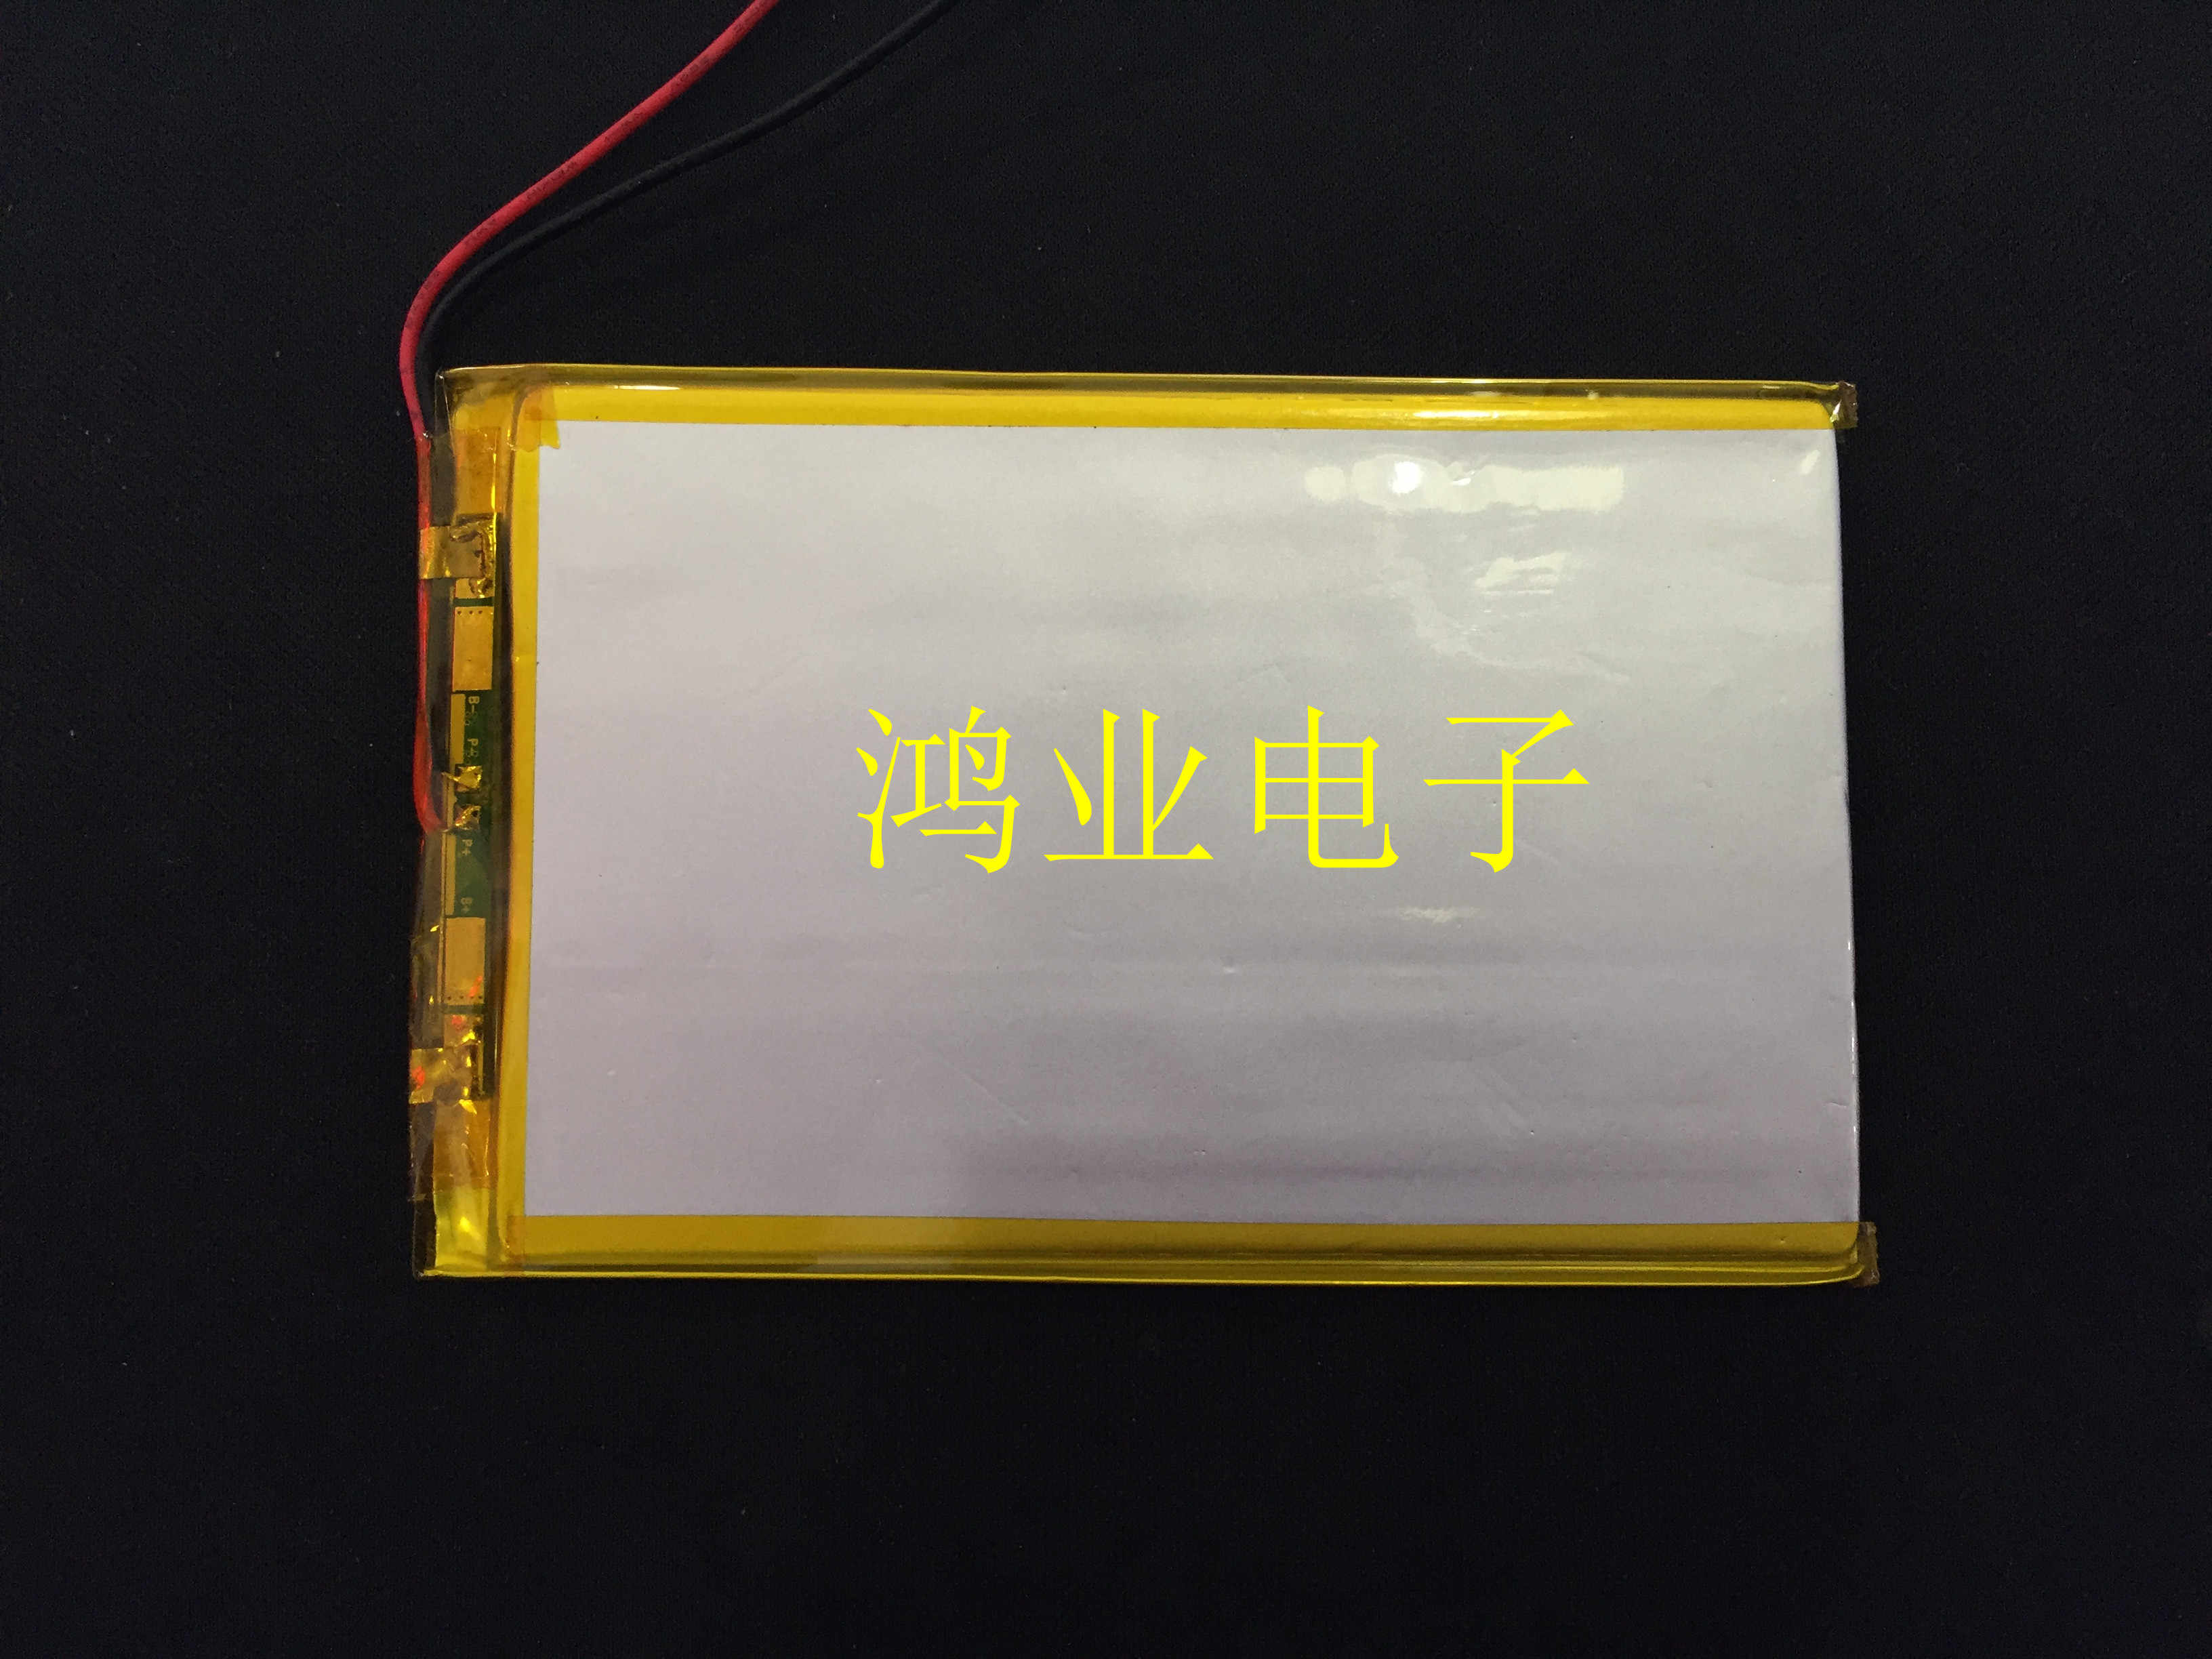 3.7V polymer lithium battery 3860110P/4060110P 3000MAH Tablet PC battery ultra-thin